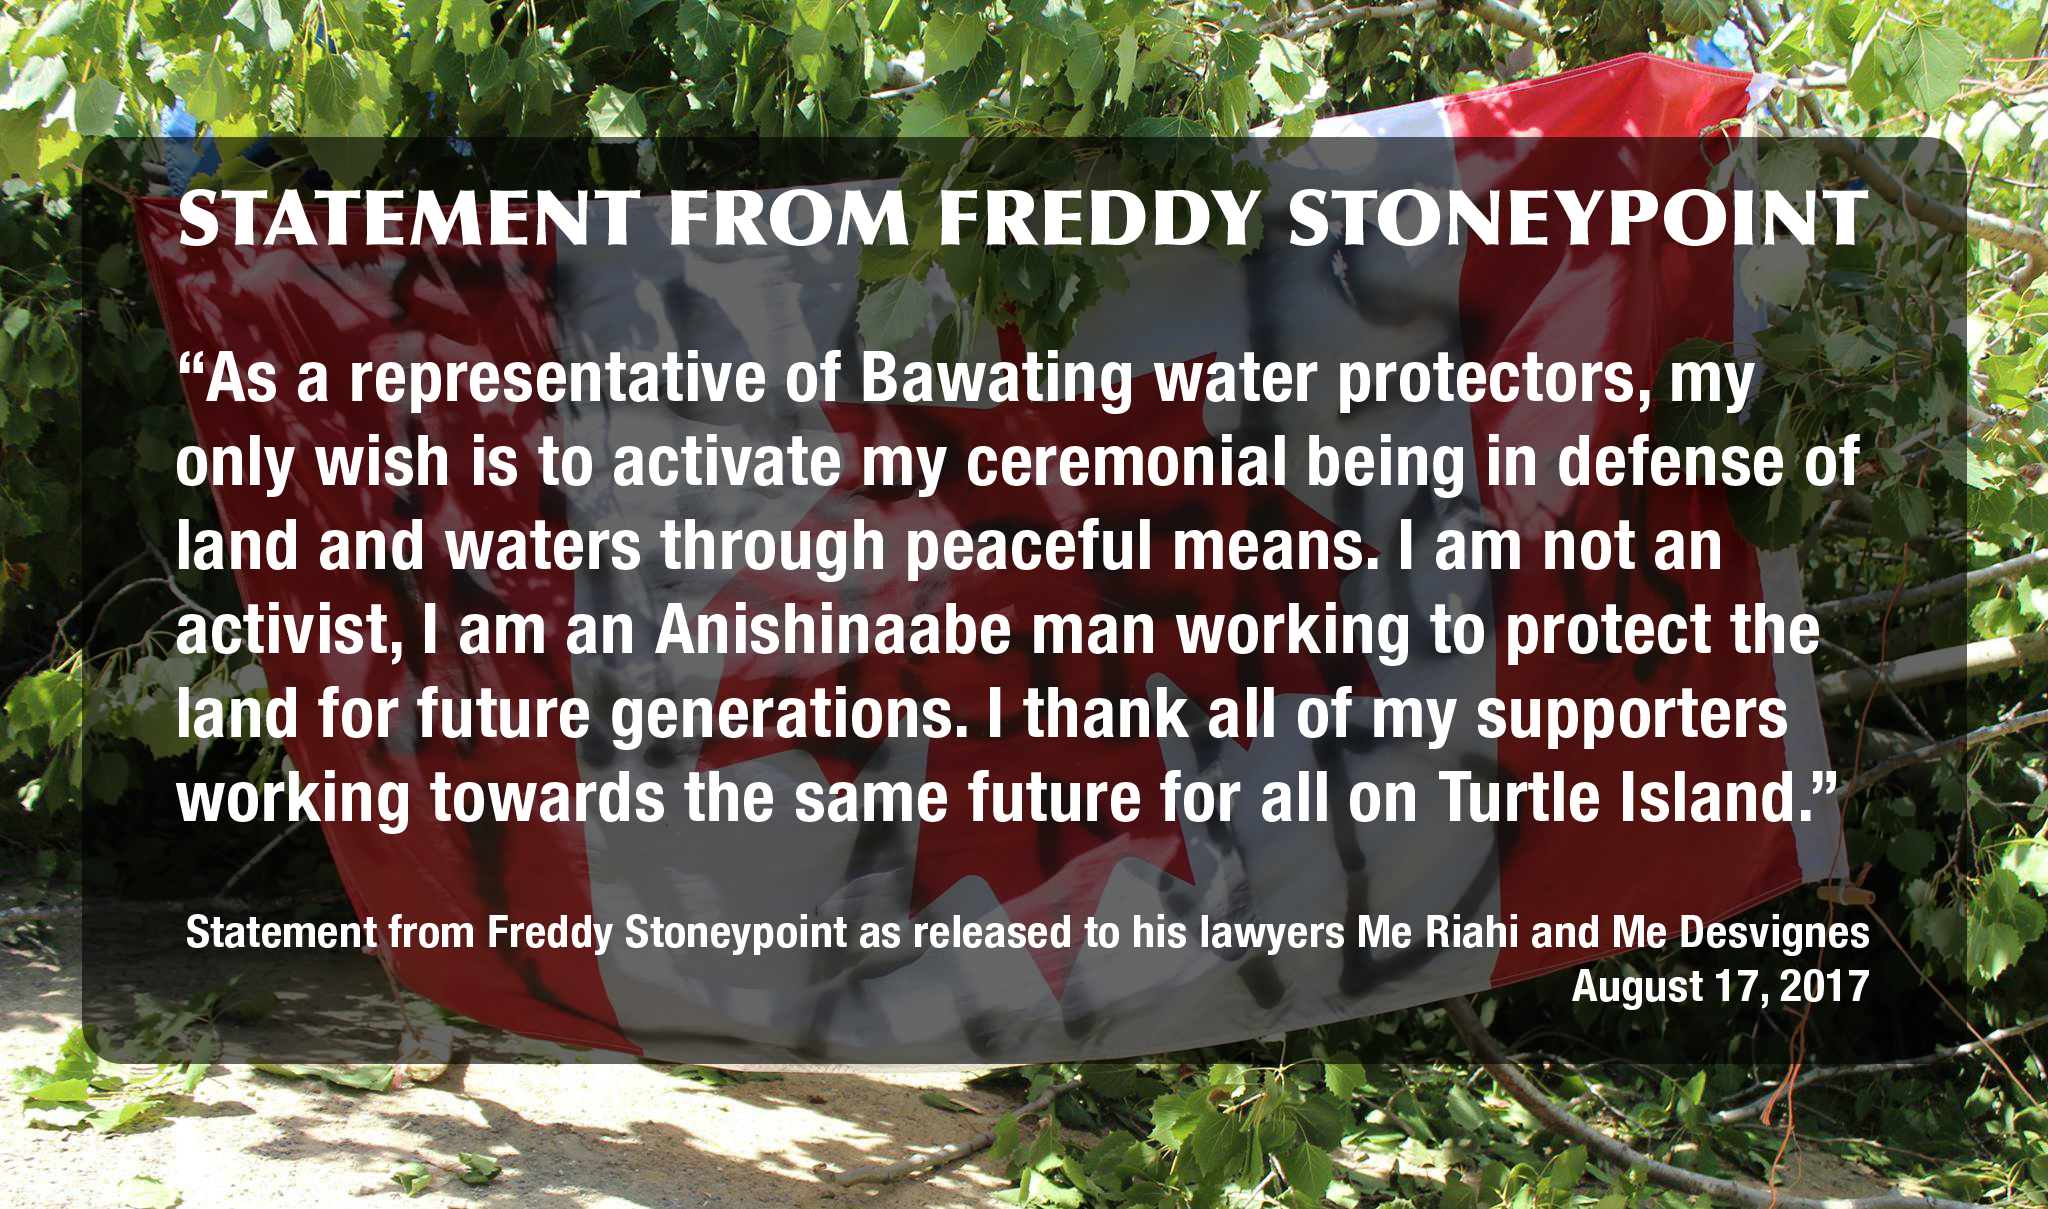 Statement from Freddy Stoneypoint